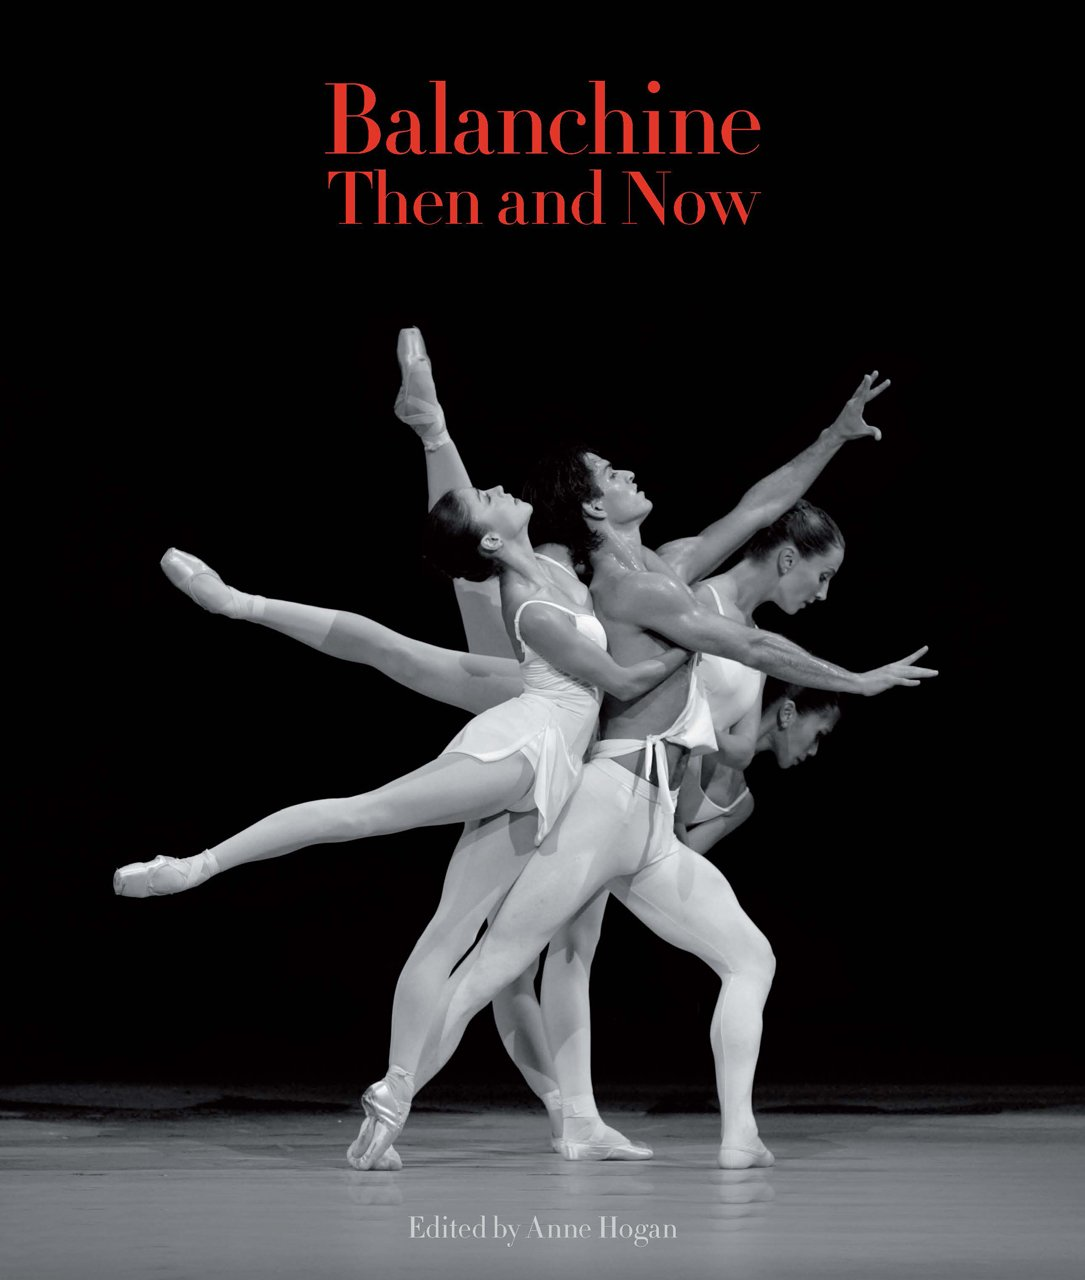 Balanchine Then and Now (The Arts Arena Publication Series) pdf